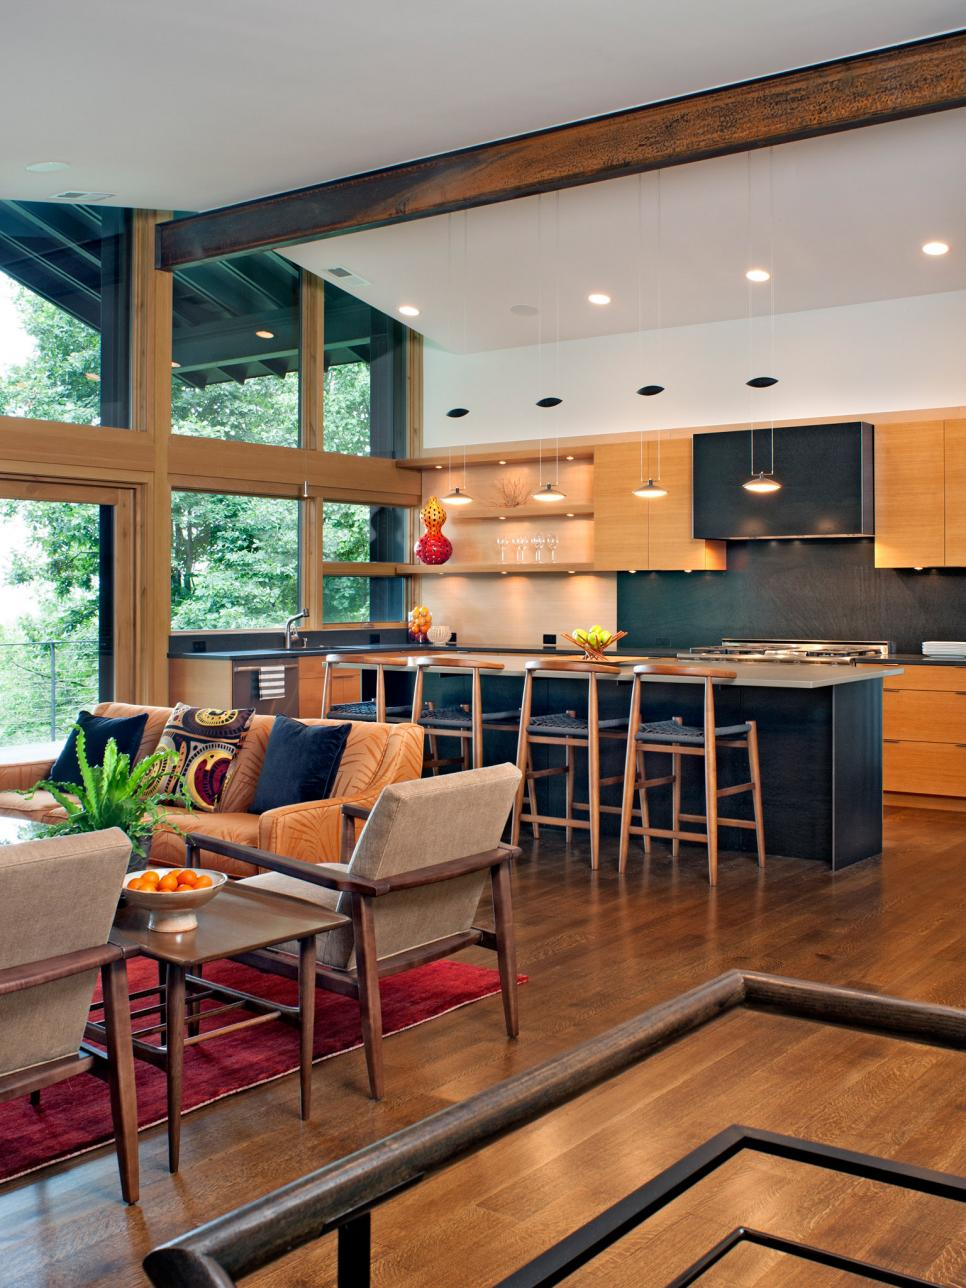 15 Open-Concept Kitchens and Living Spaces With Flow | HGTV